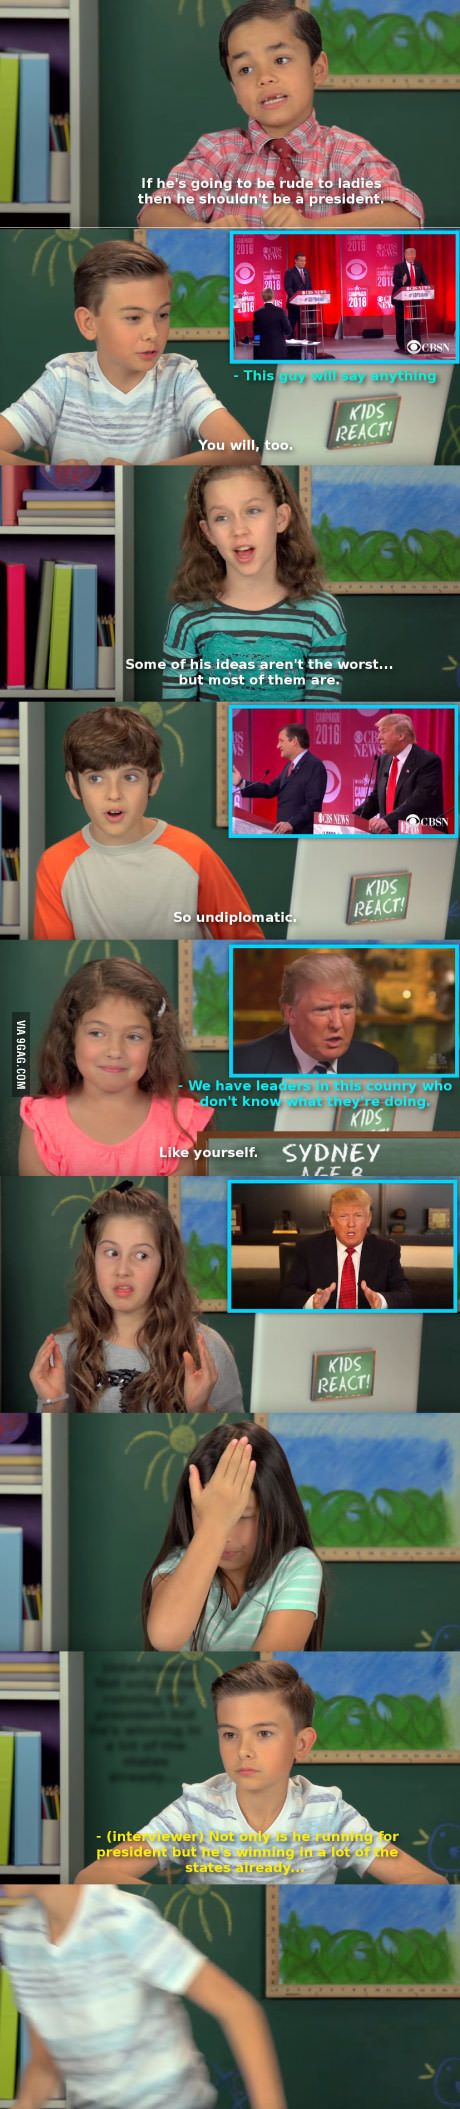 Kids React to Trump lol<< they seem smarter than adults